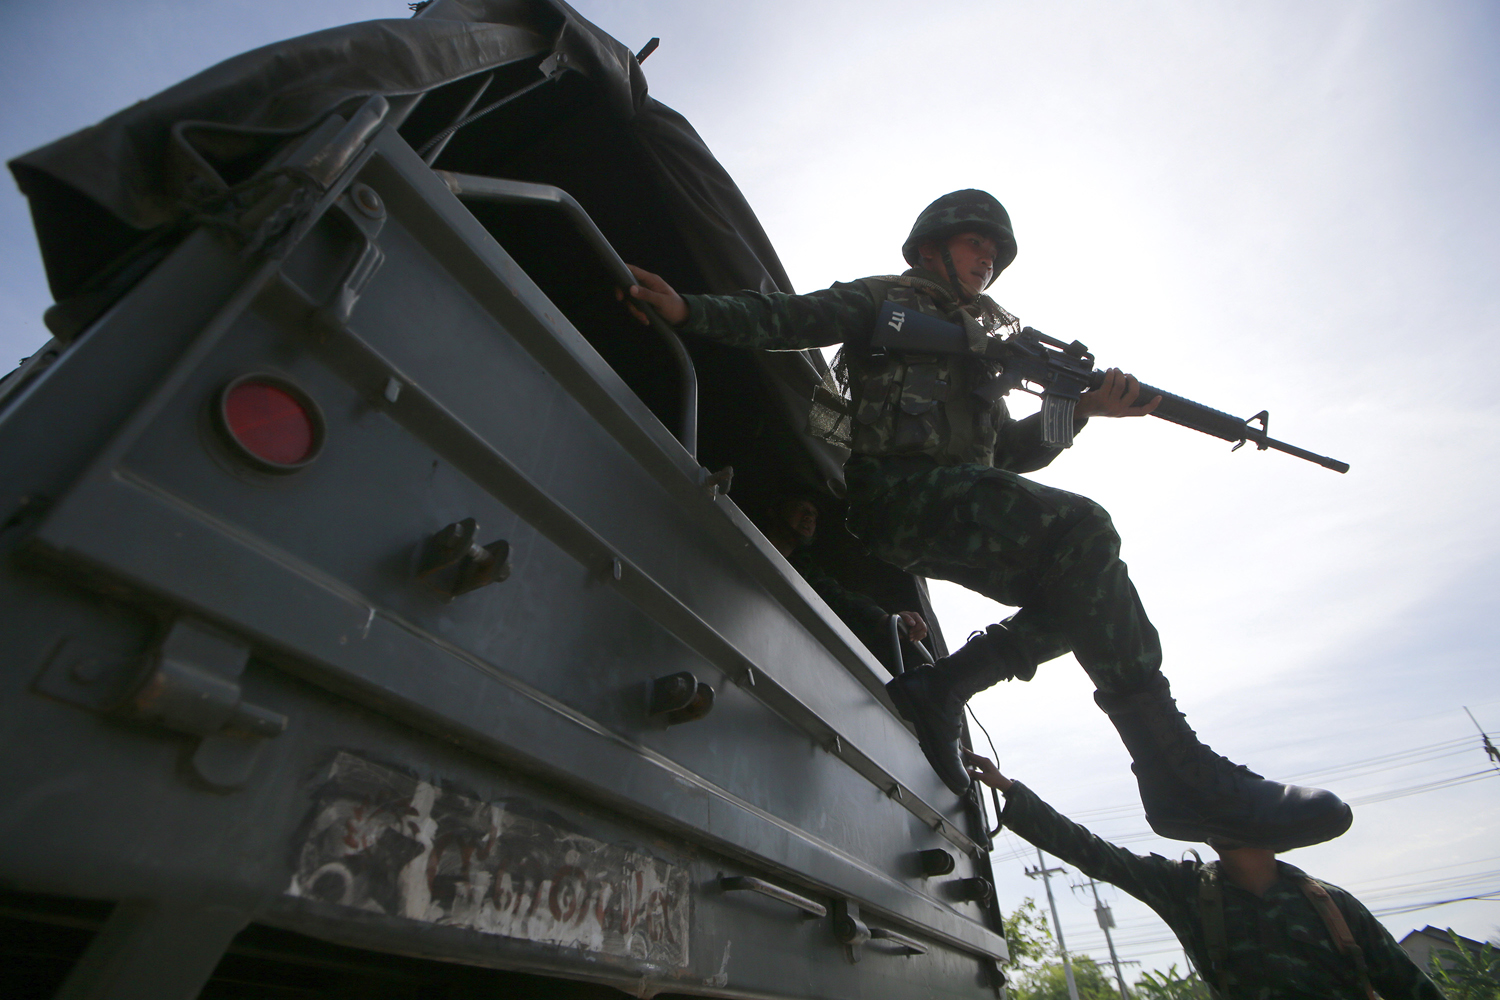 A Thai soldier jumps off a military truck after arriving at a progovernment rally site on the outskirts of Bangkok on Tuesday, May 20, 2014.